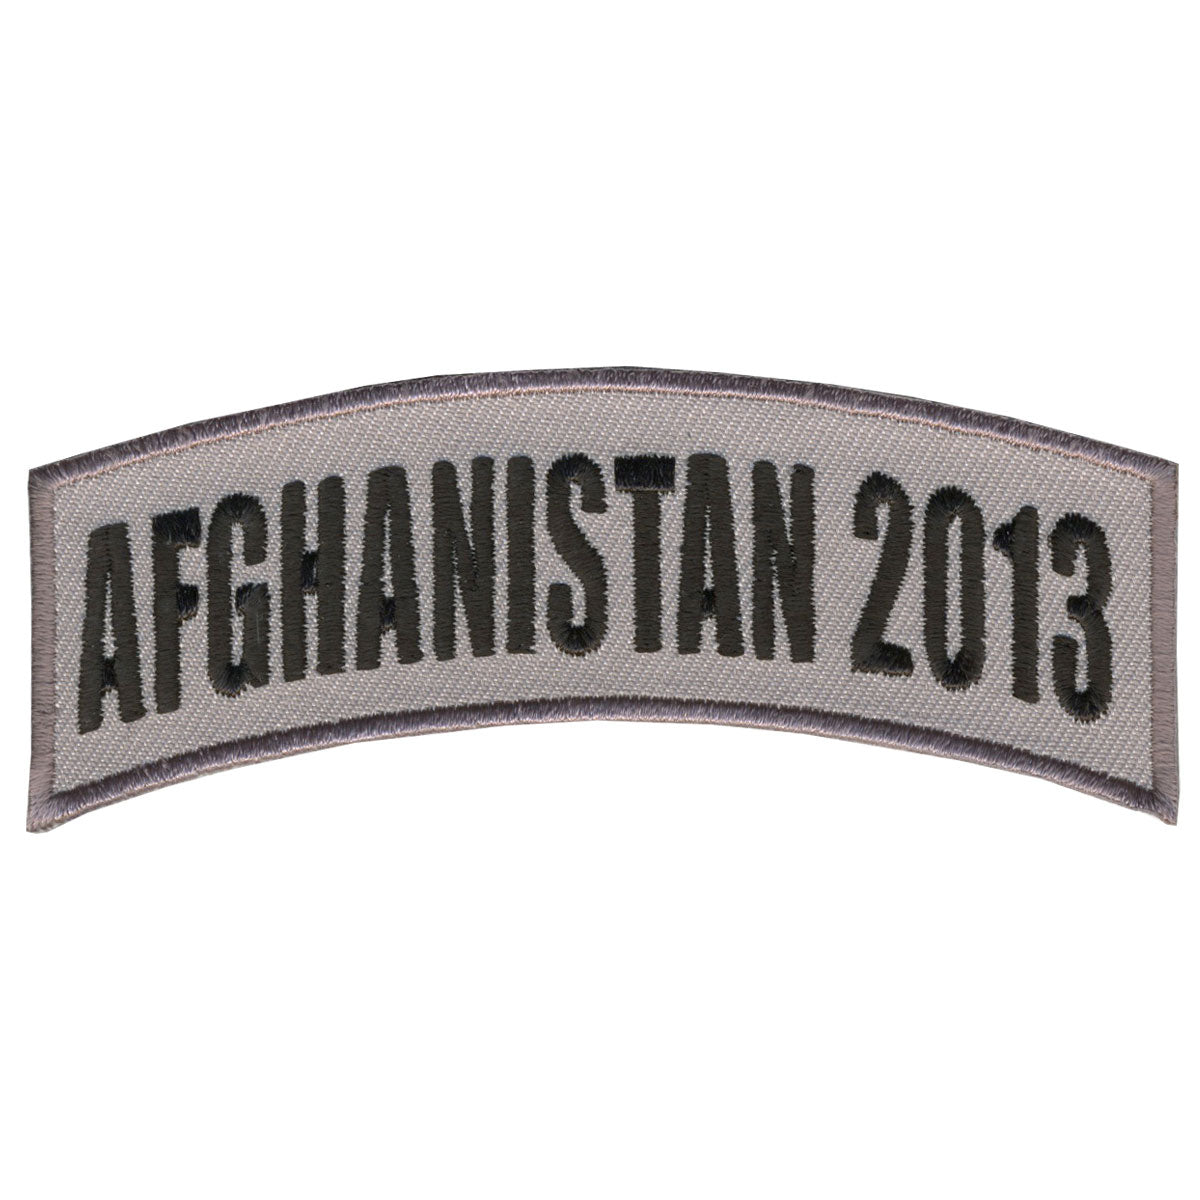 "Hot Leathers Afghanistan 2013 4"" x 1"" Patch"